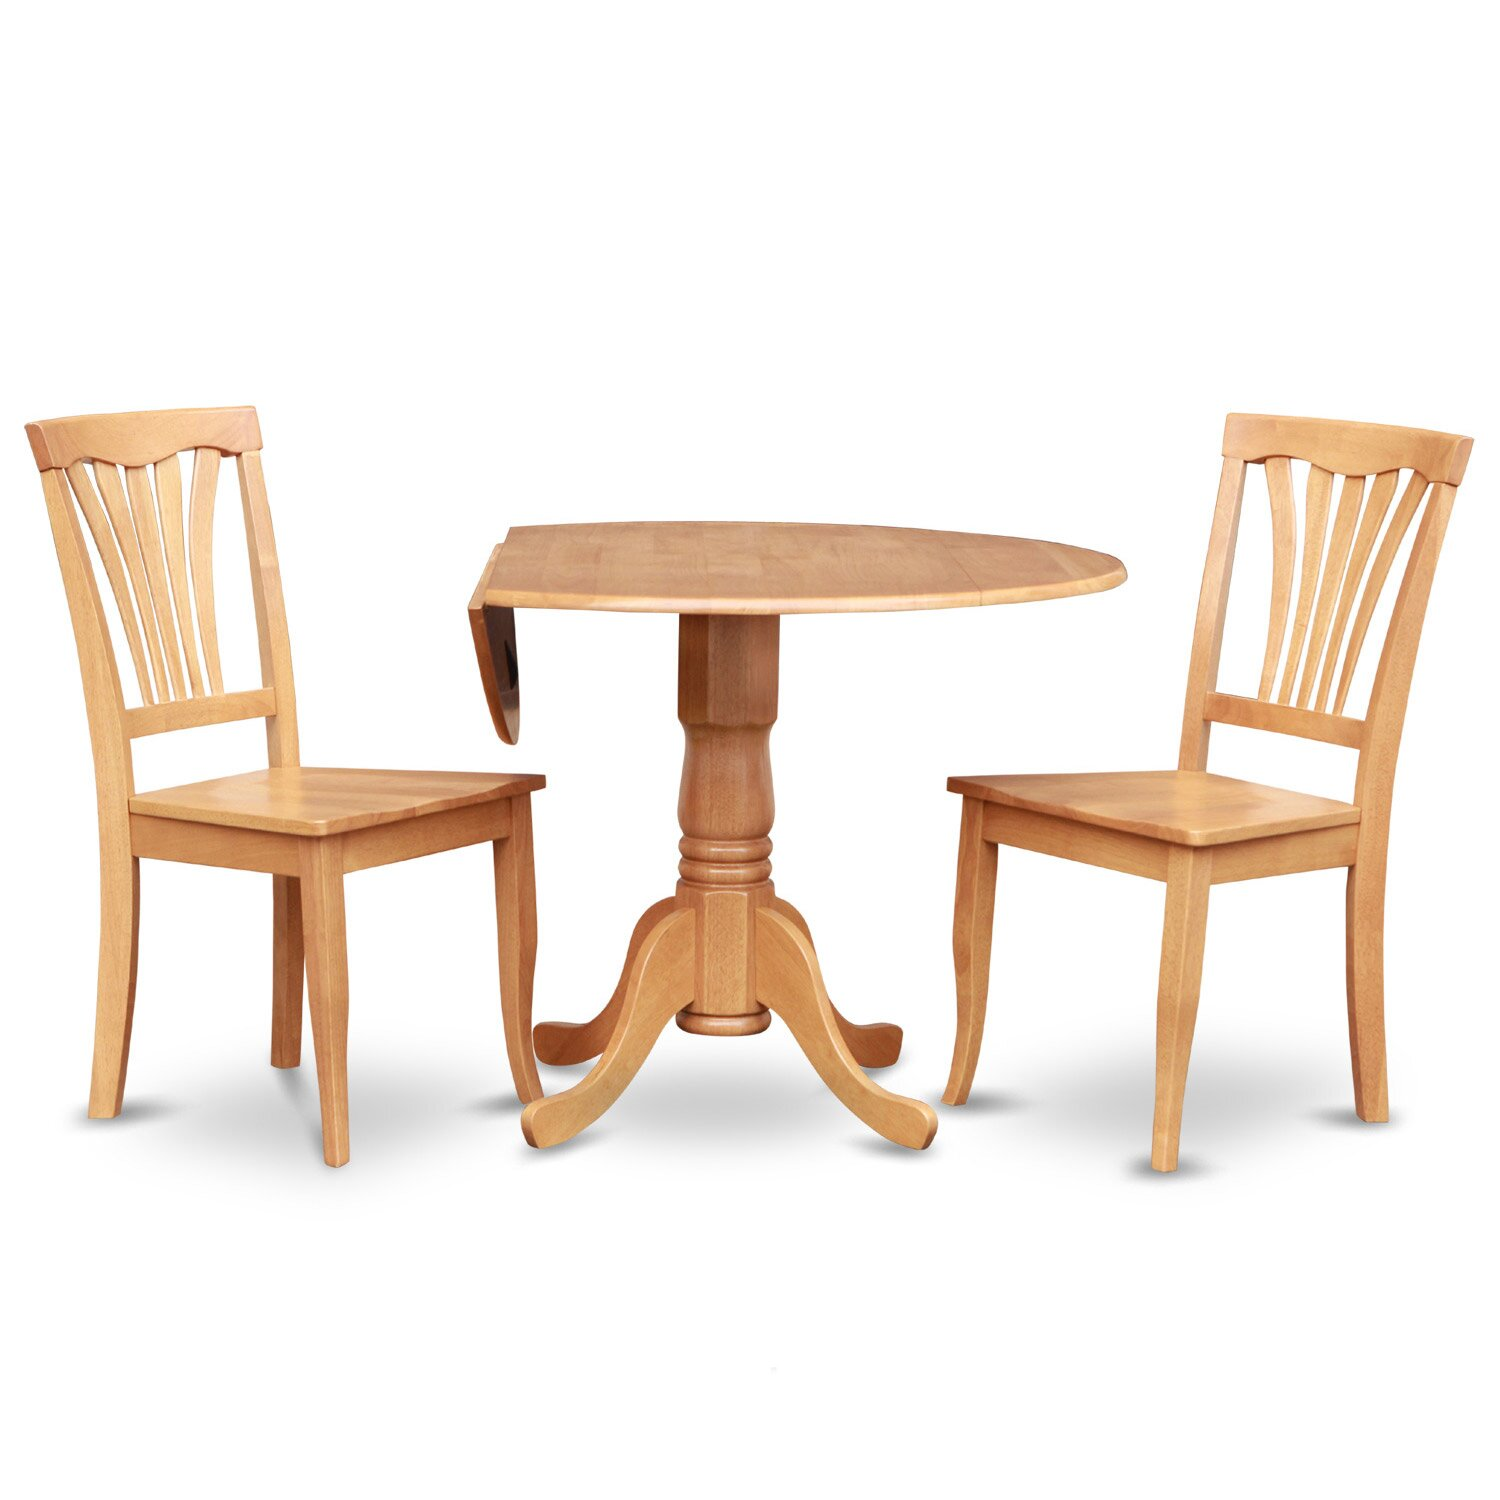 Wooden importers dublin 3 piece dining set reviews wayfair for Kitchen table and chairs